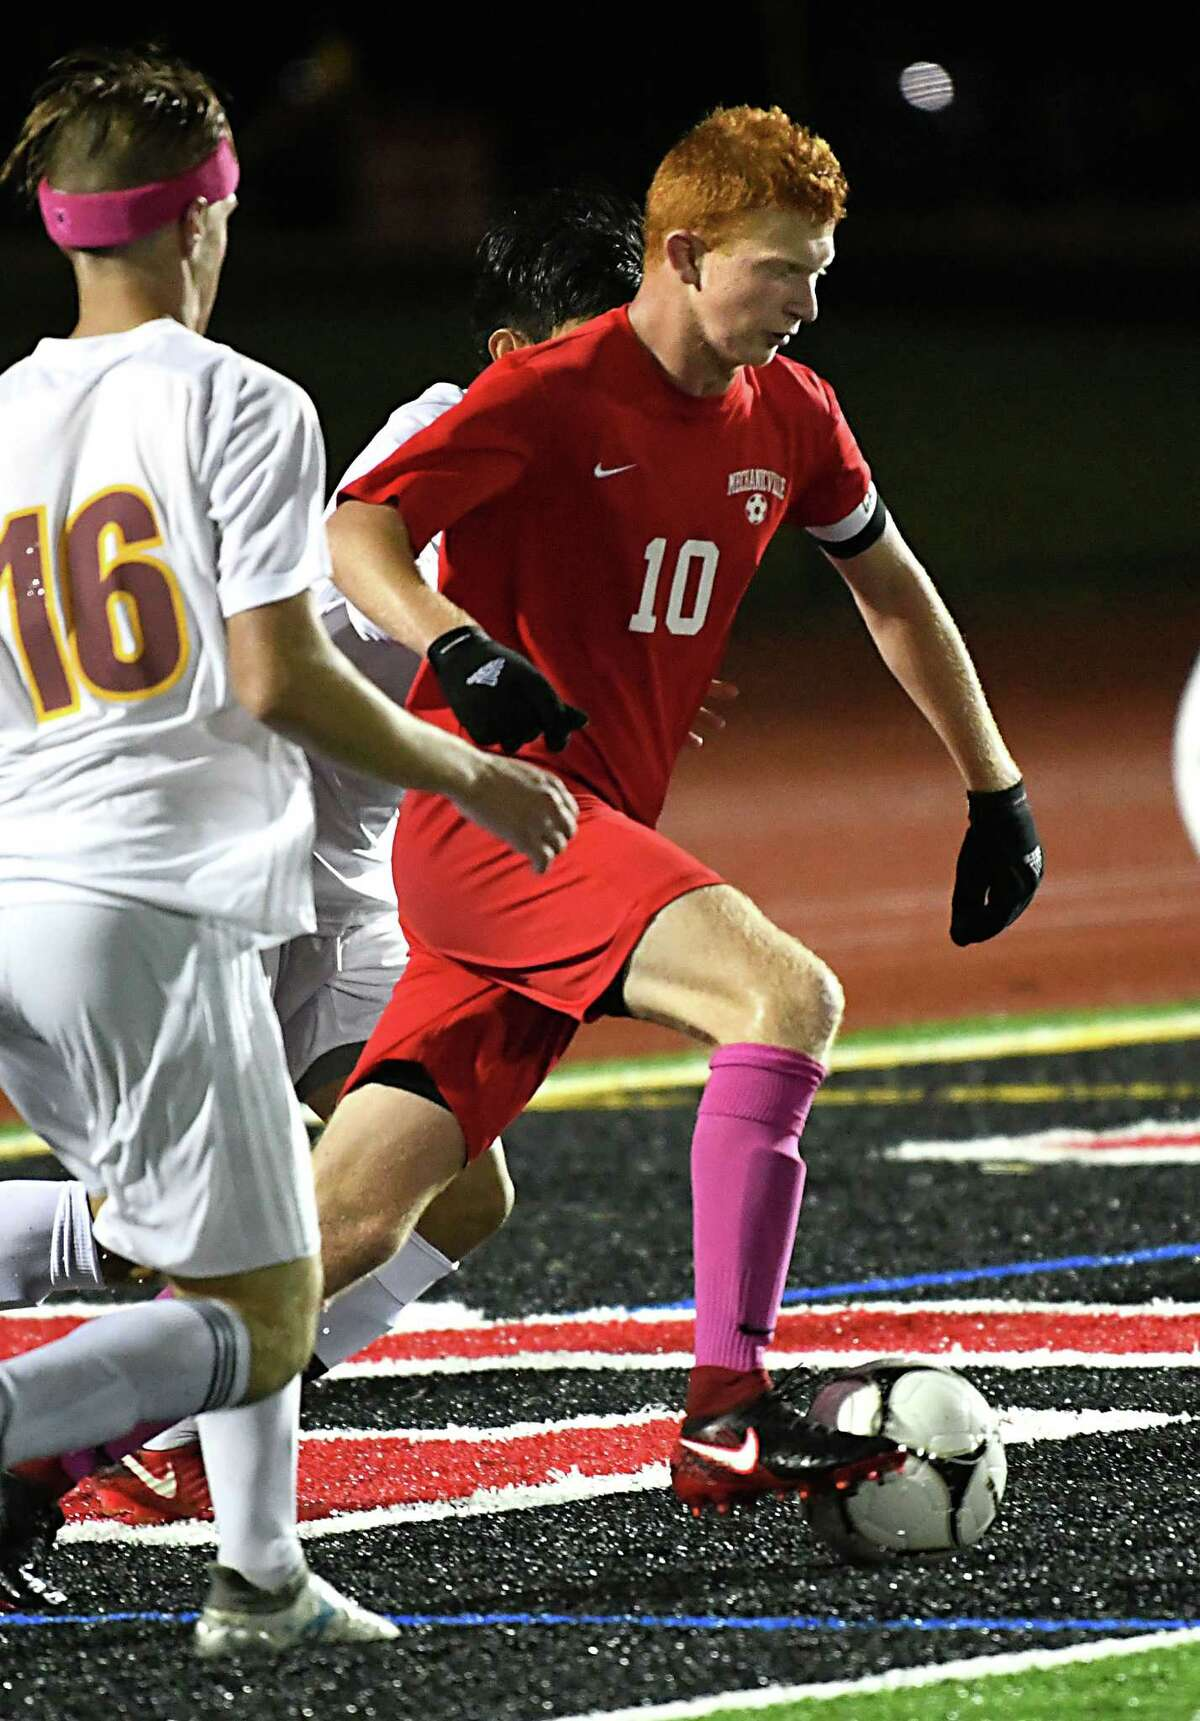 Mechanicville's Chris Ciccarelli (#10) handles the ball during a soccer game against Colonie on Monday, Oct. 1, 2018 in Mechanicville, N.Y. (Lori Van Buren/Times Union)